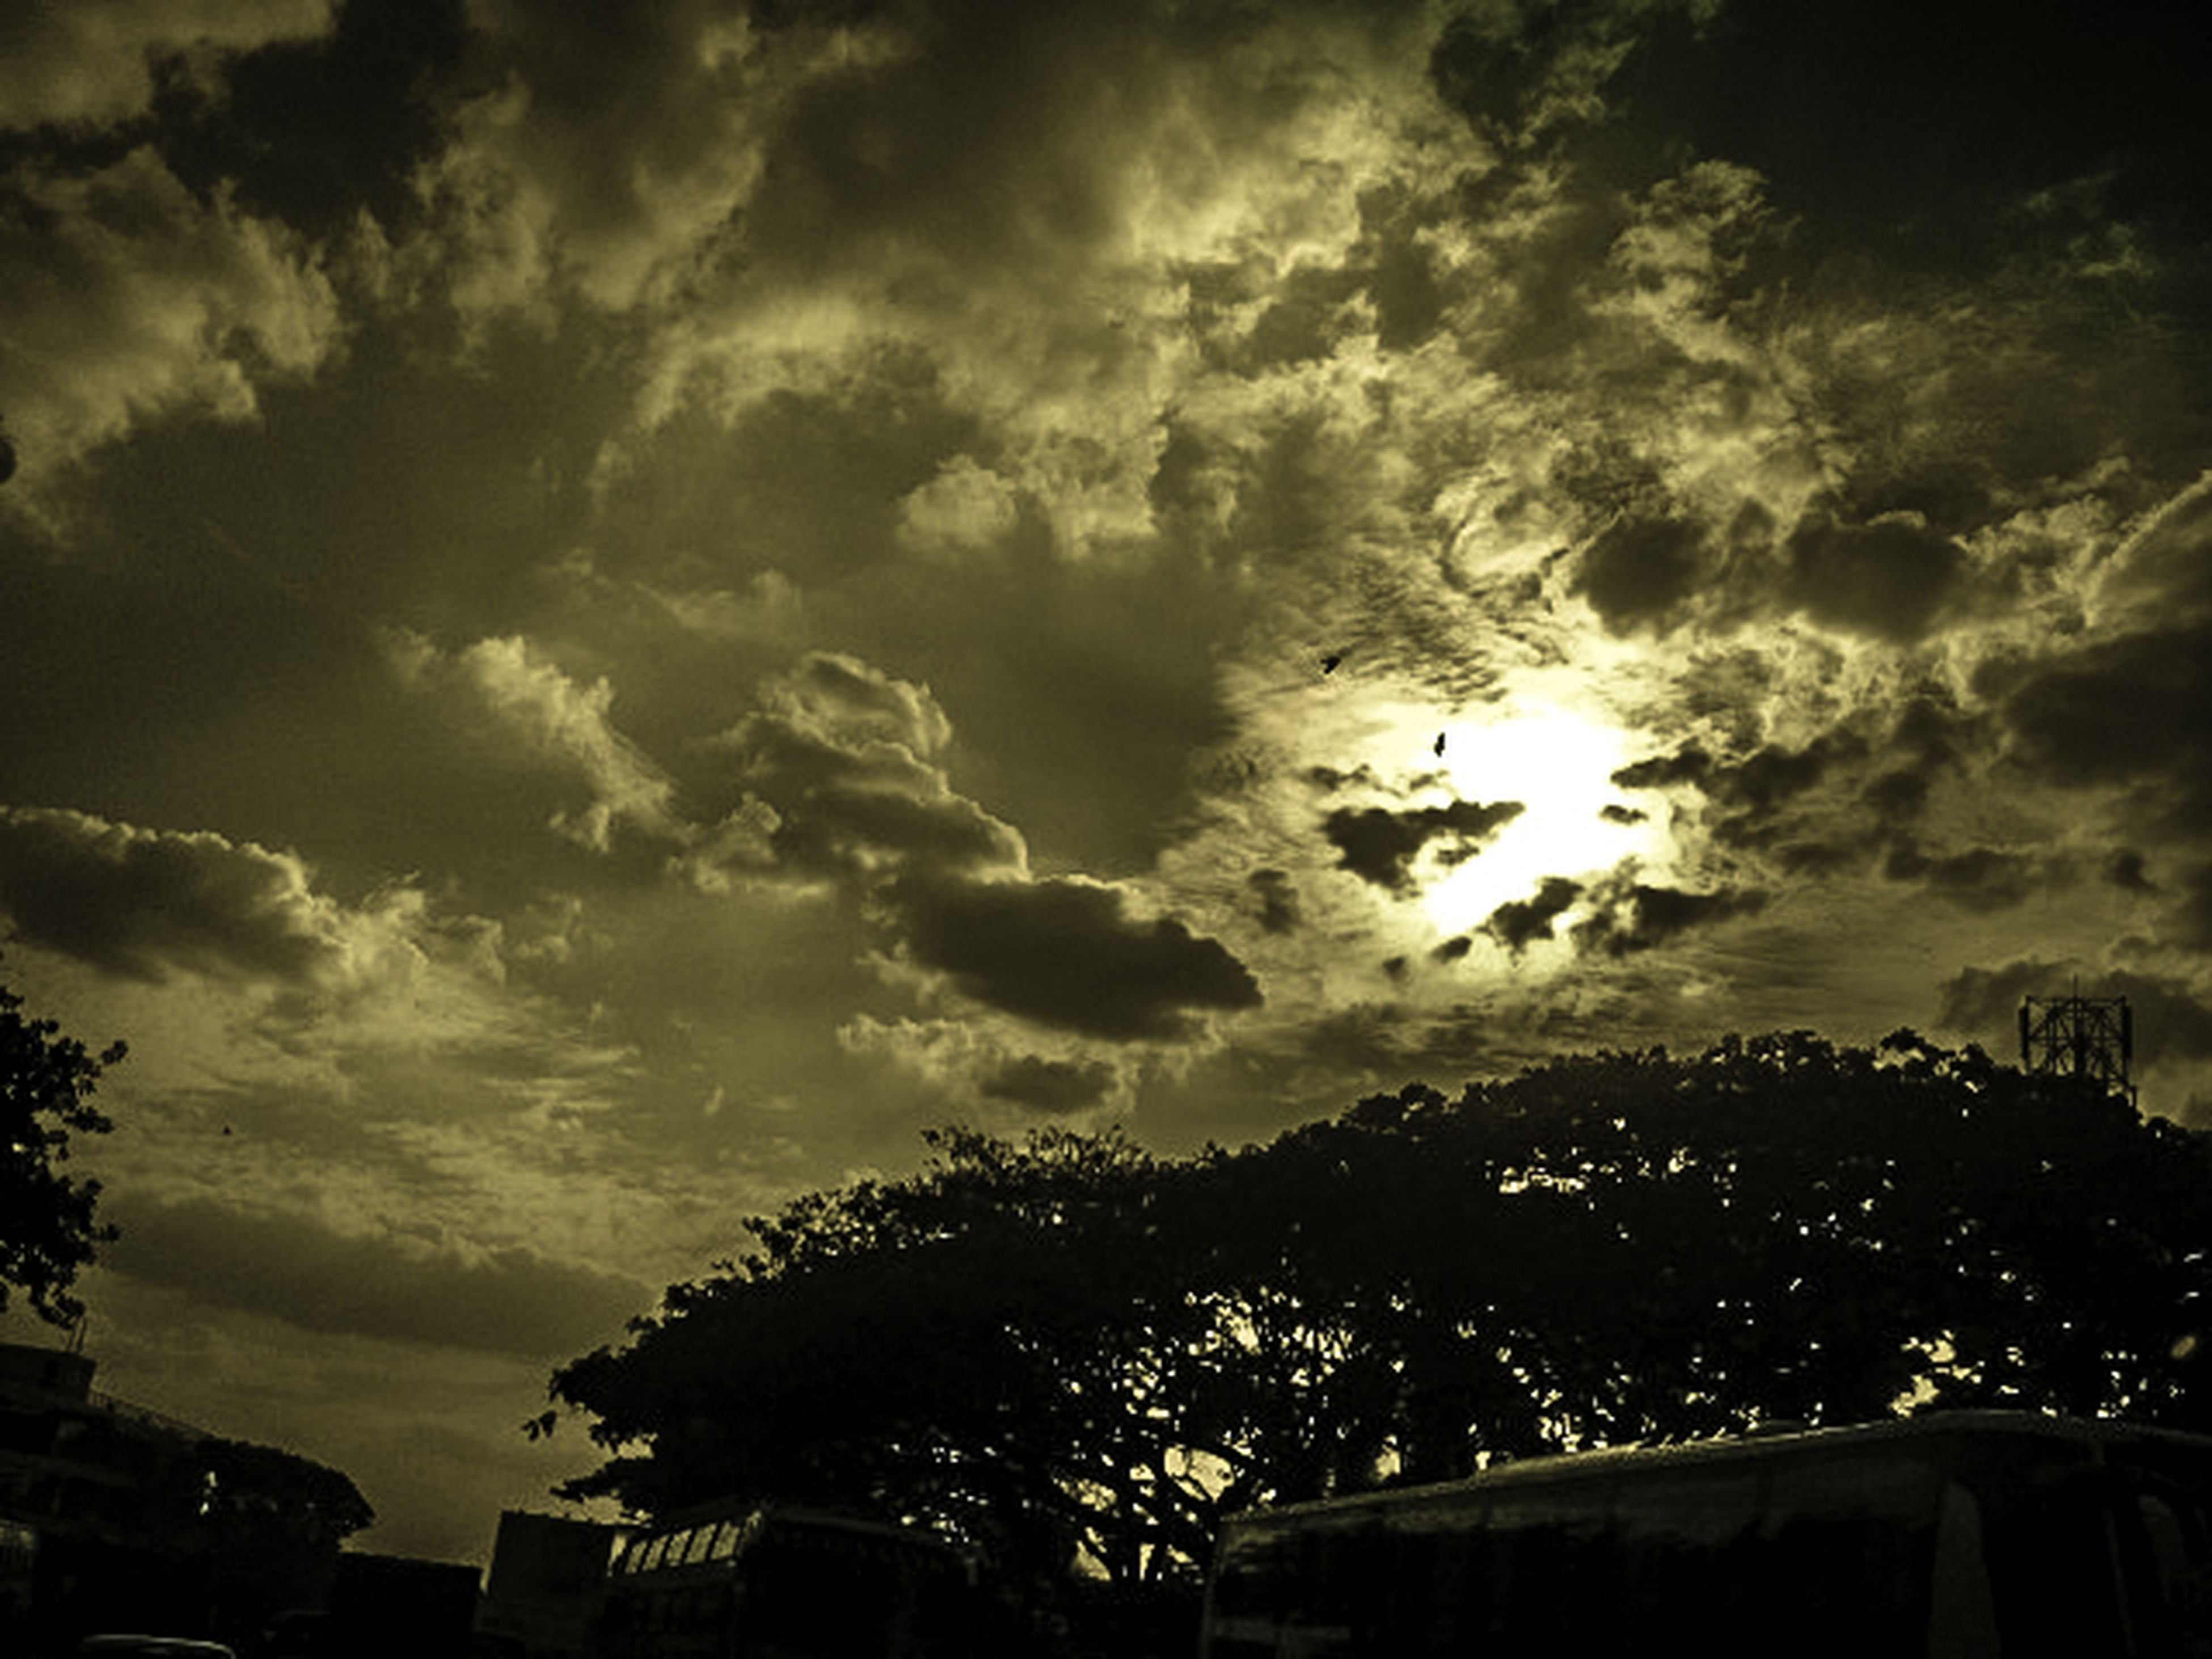 sky, tree, cloud - sky, low angle view, cloudy, building exterior, built structure, architecture, cloud, silhouette, nature, beauty in nature, outdoors, weather, no people, growth, city, scenics, dusk, house